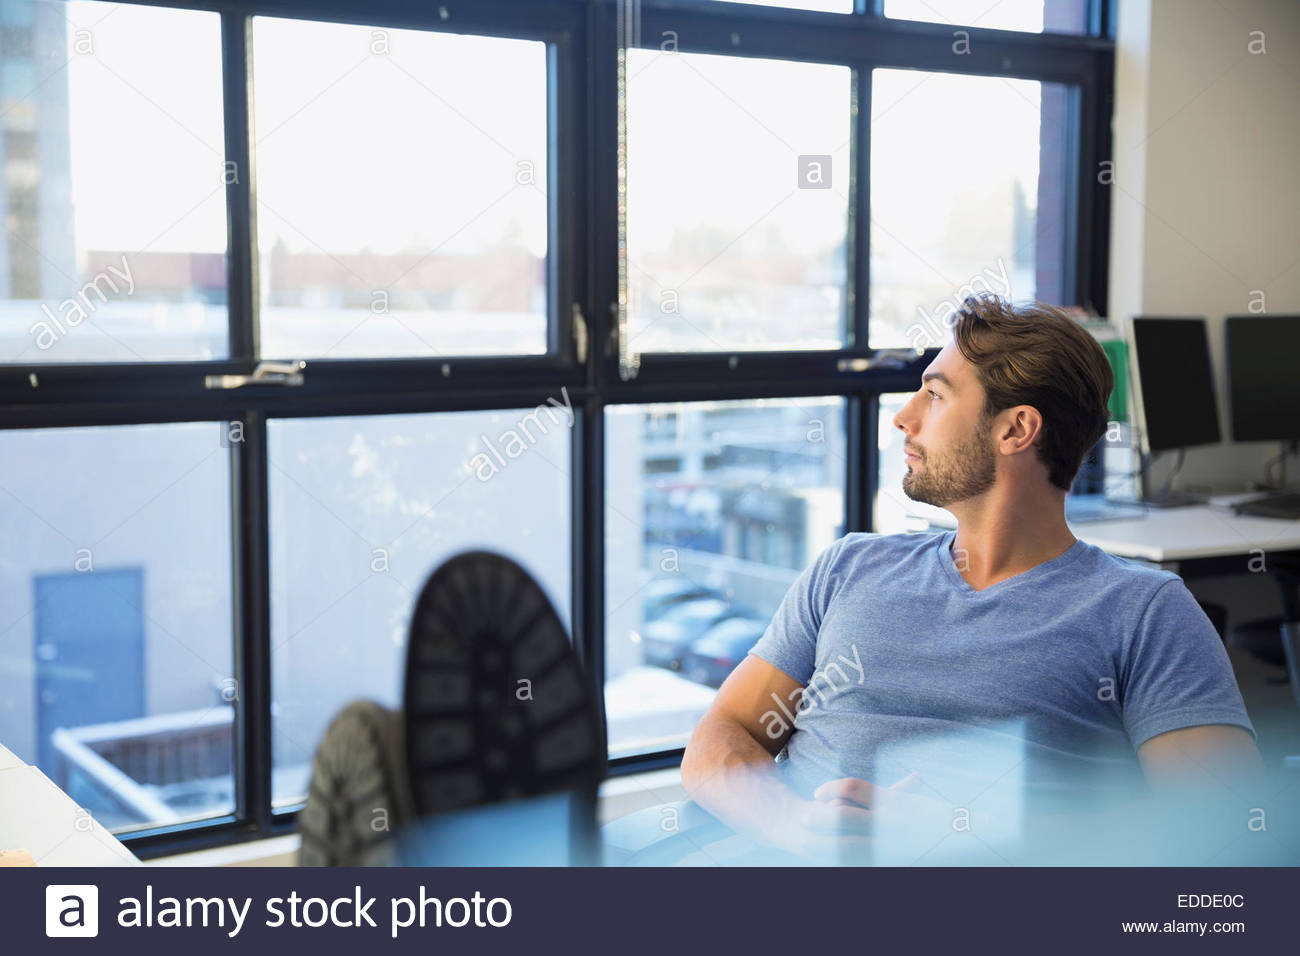 Pensive businessman with feet up looking out window - Stock Image